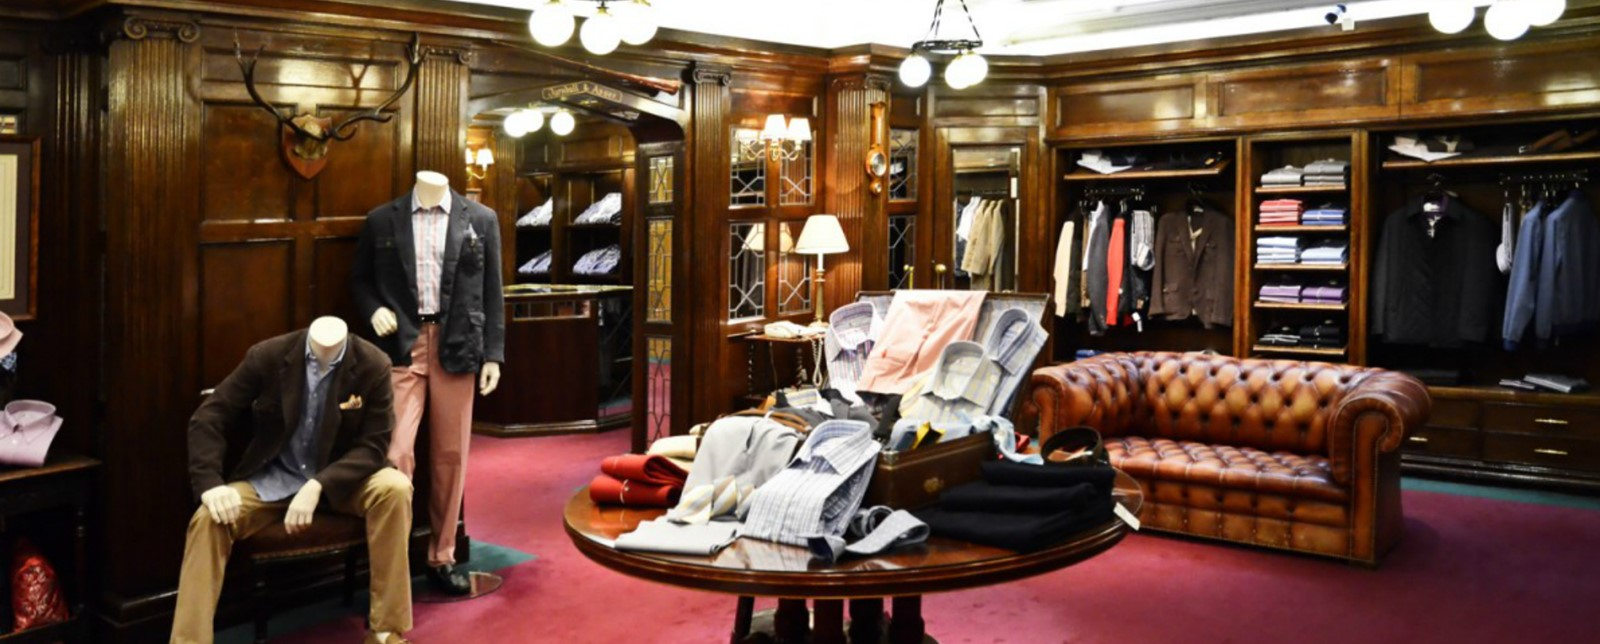 The interior of Turnbull and Asser men's clothing shop